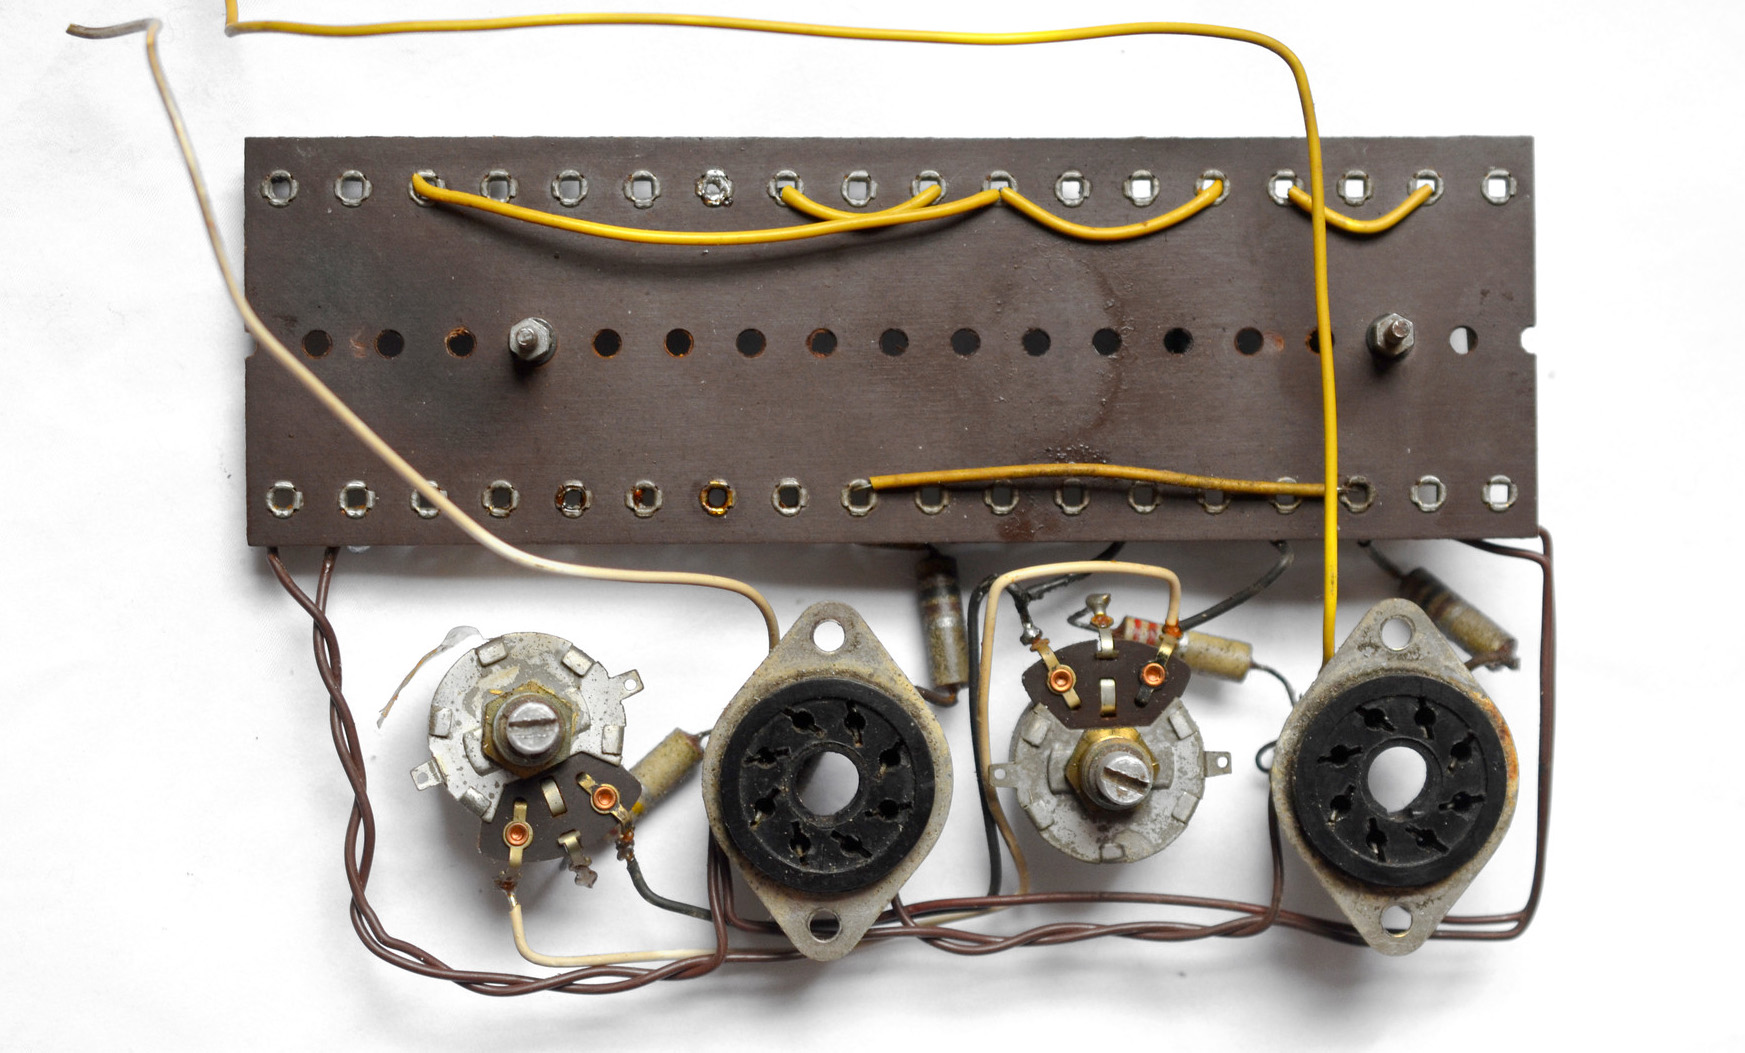 Vox AC50 underchassis board